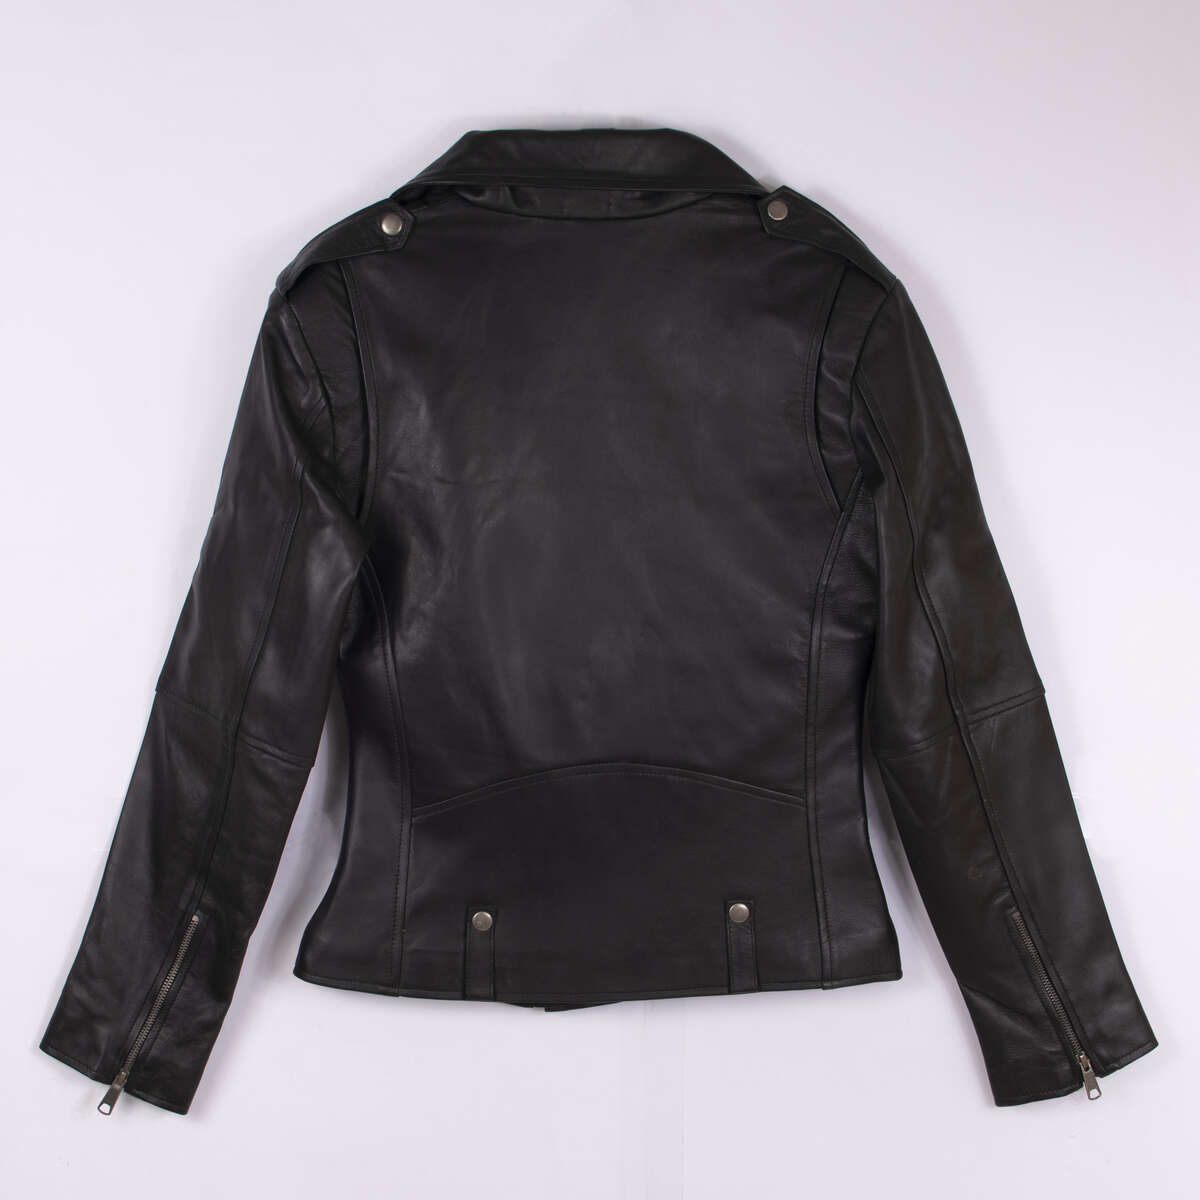 Back of Black Classic Leather Biker Jacket